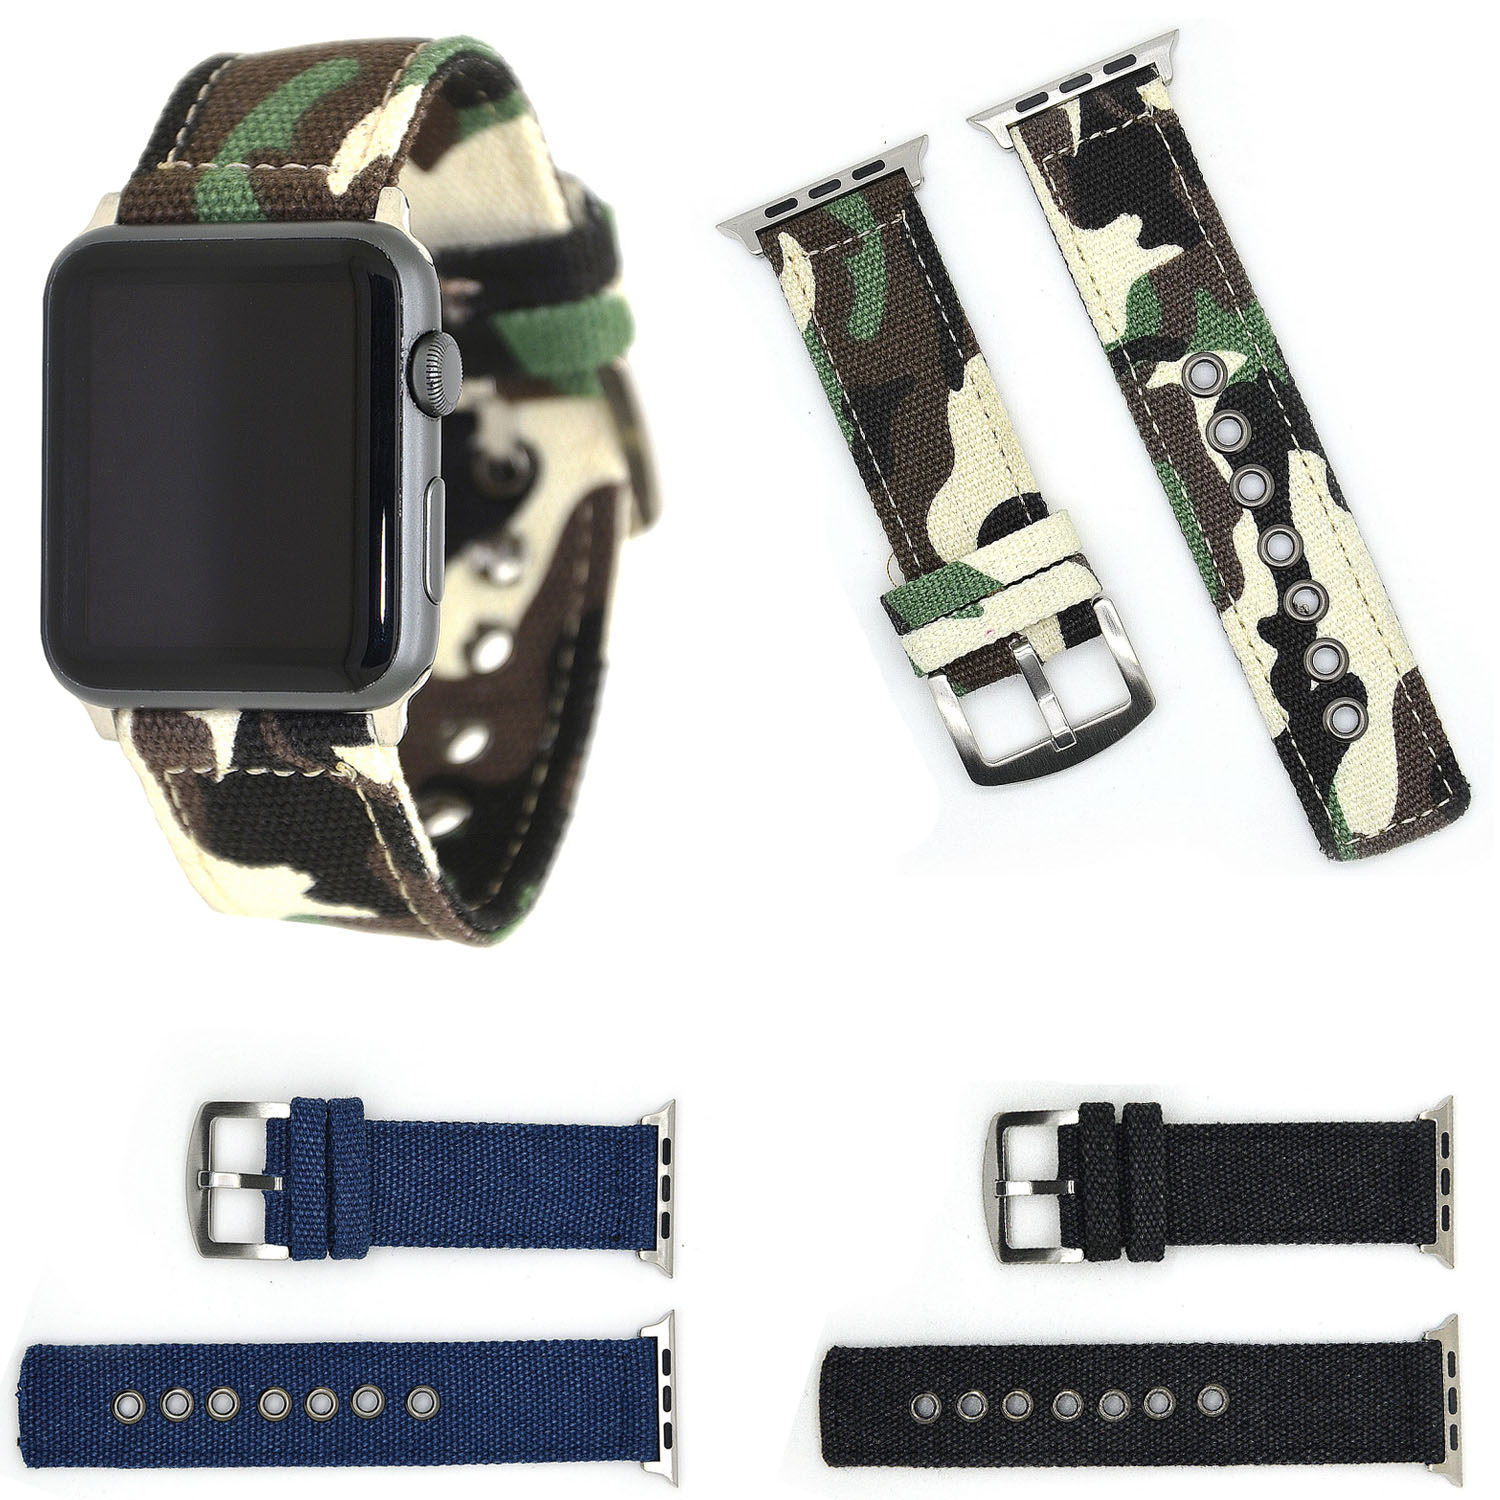 Sports Camouflage Canvas Wrist Strap for Apple Watch Series 1/2/3 Band Fabric Watchbands Metal Buckle Bracelet 42mm 38mm camouflage sports acrylic transparent shell quartz wrist watch camouflage yellow